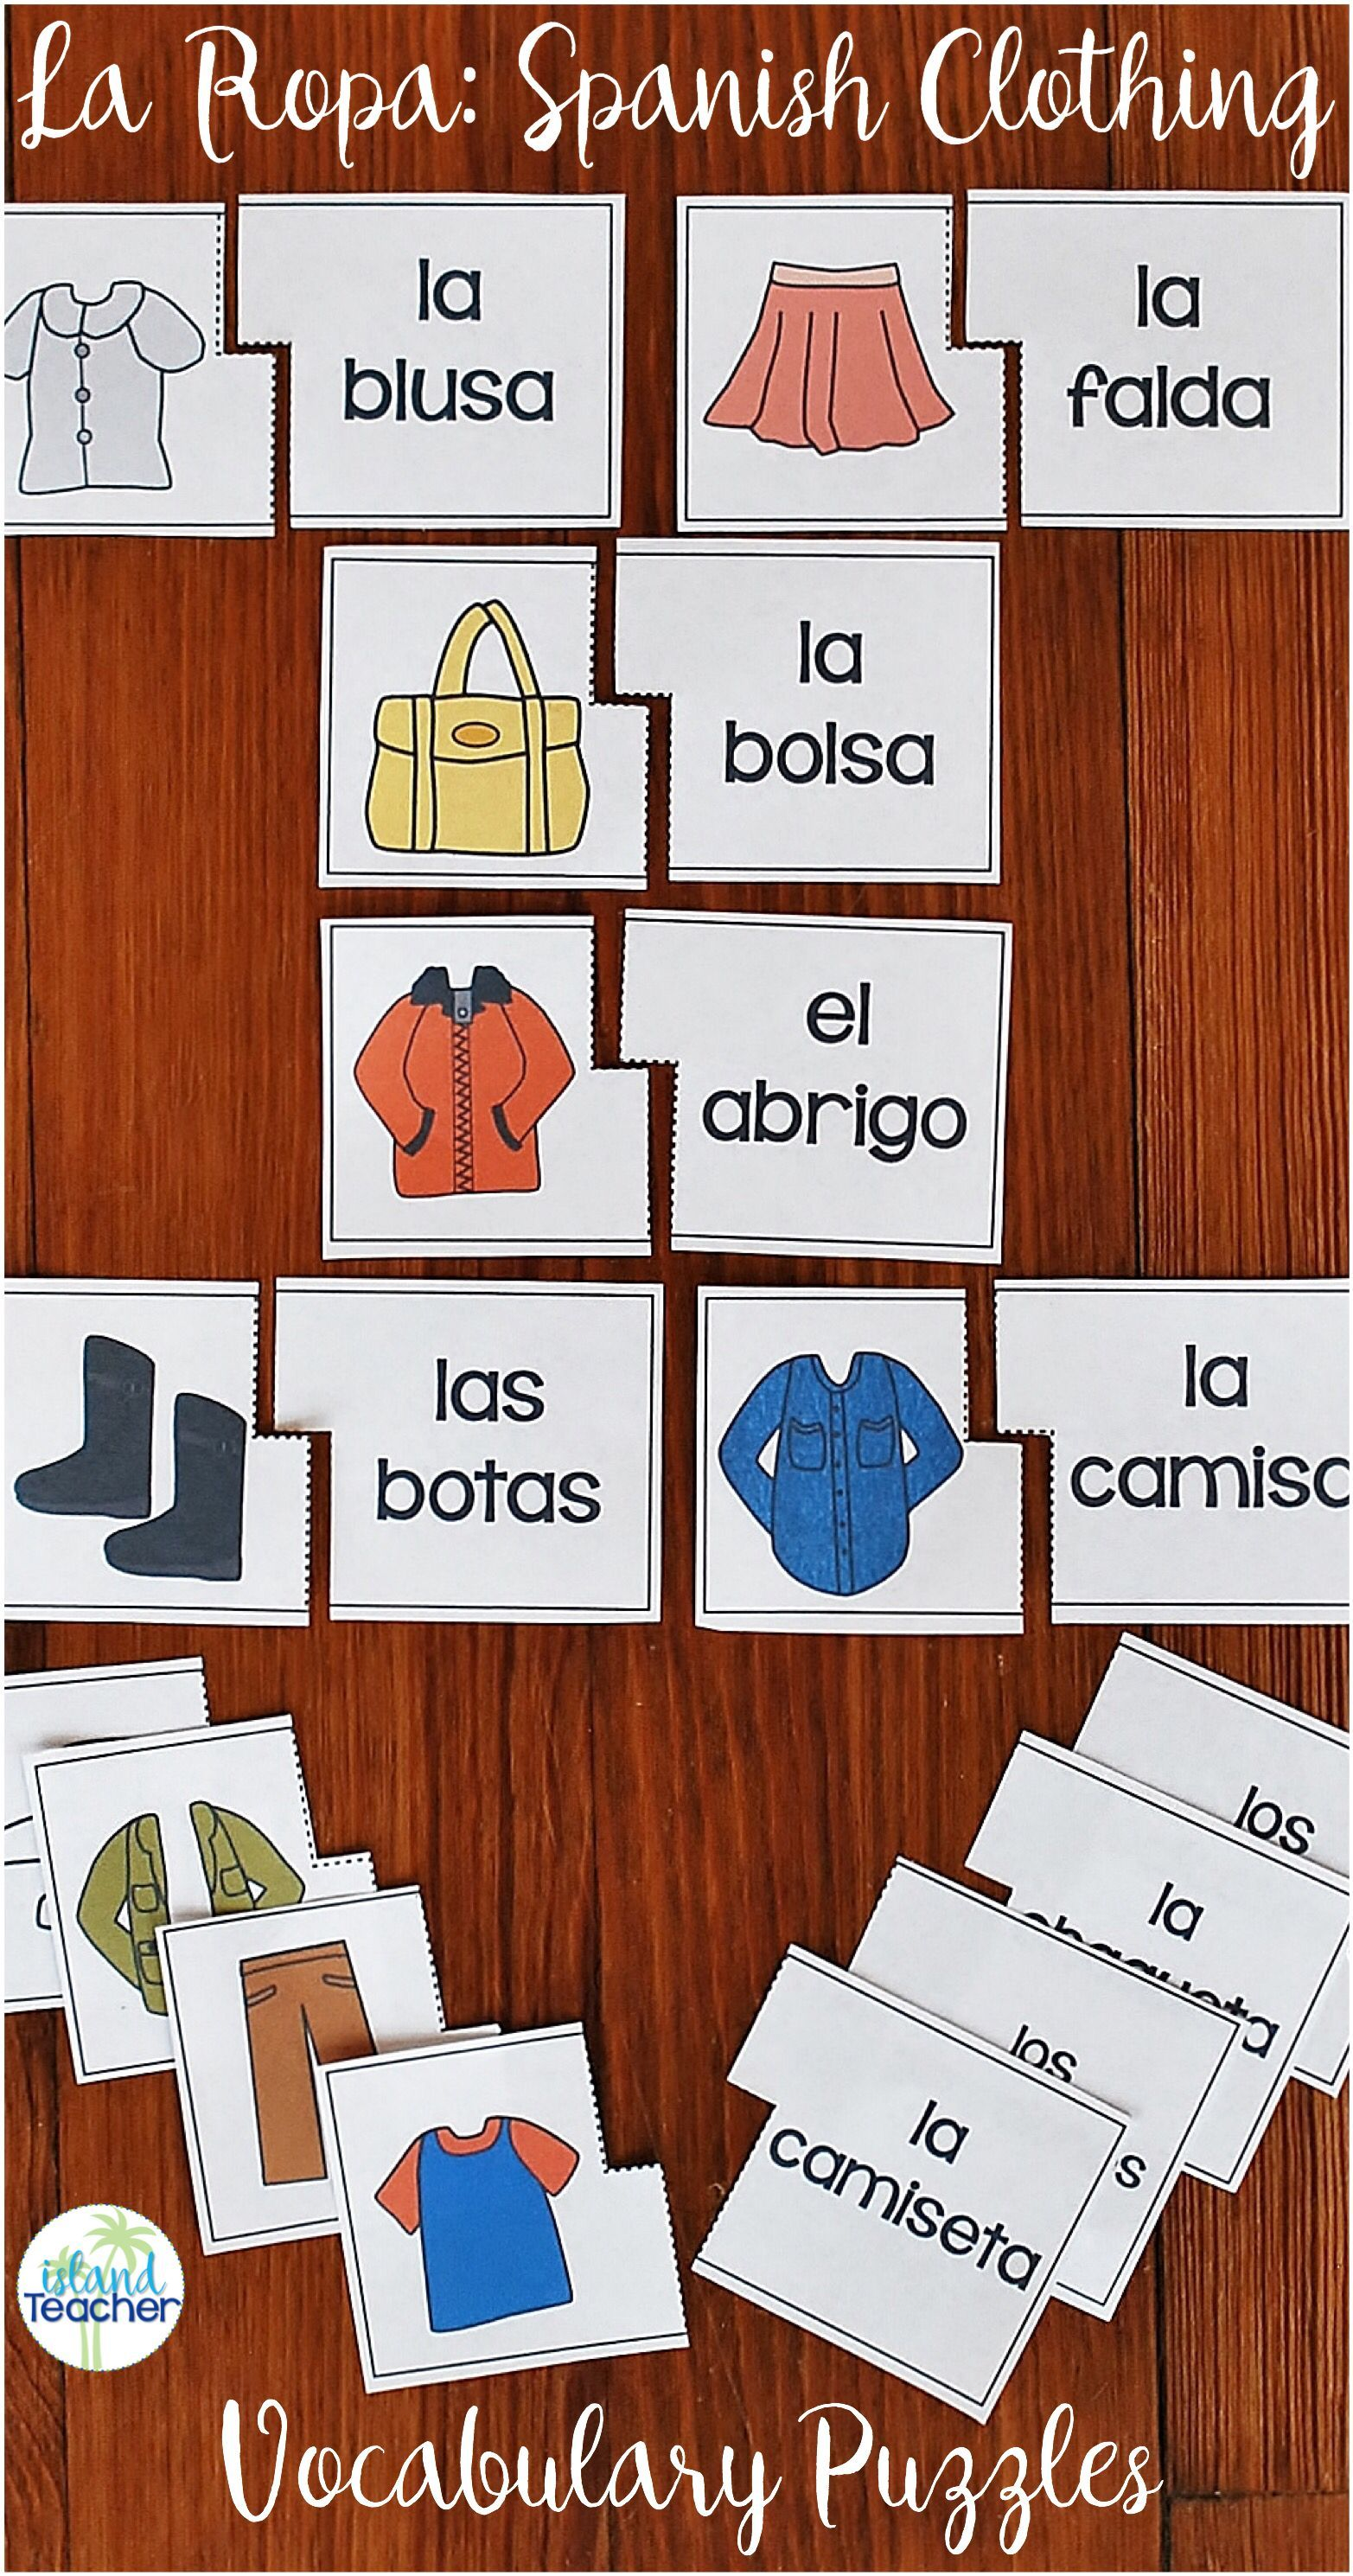 Spanish Clothing Matching Puzzles Includes 2 Versions